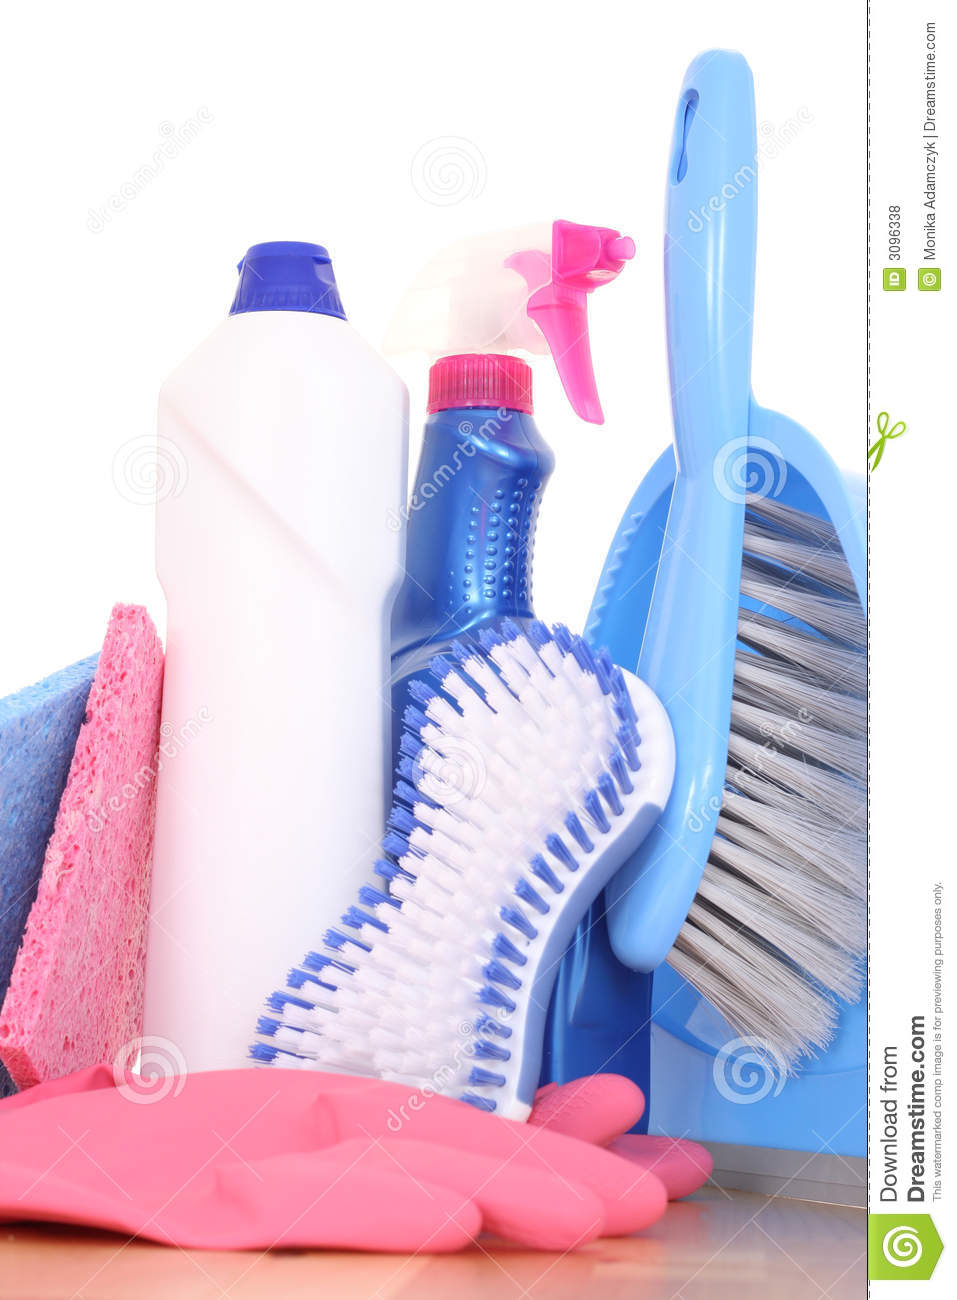 Cleaning house royalty free stock photos image 3096338 for House cleaning stock photos